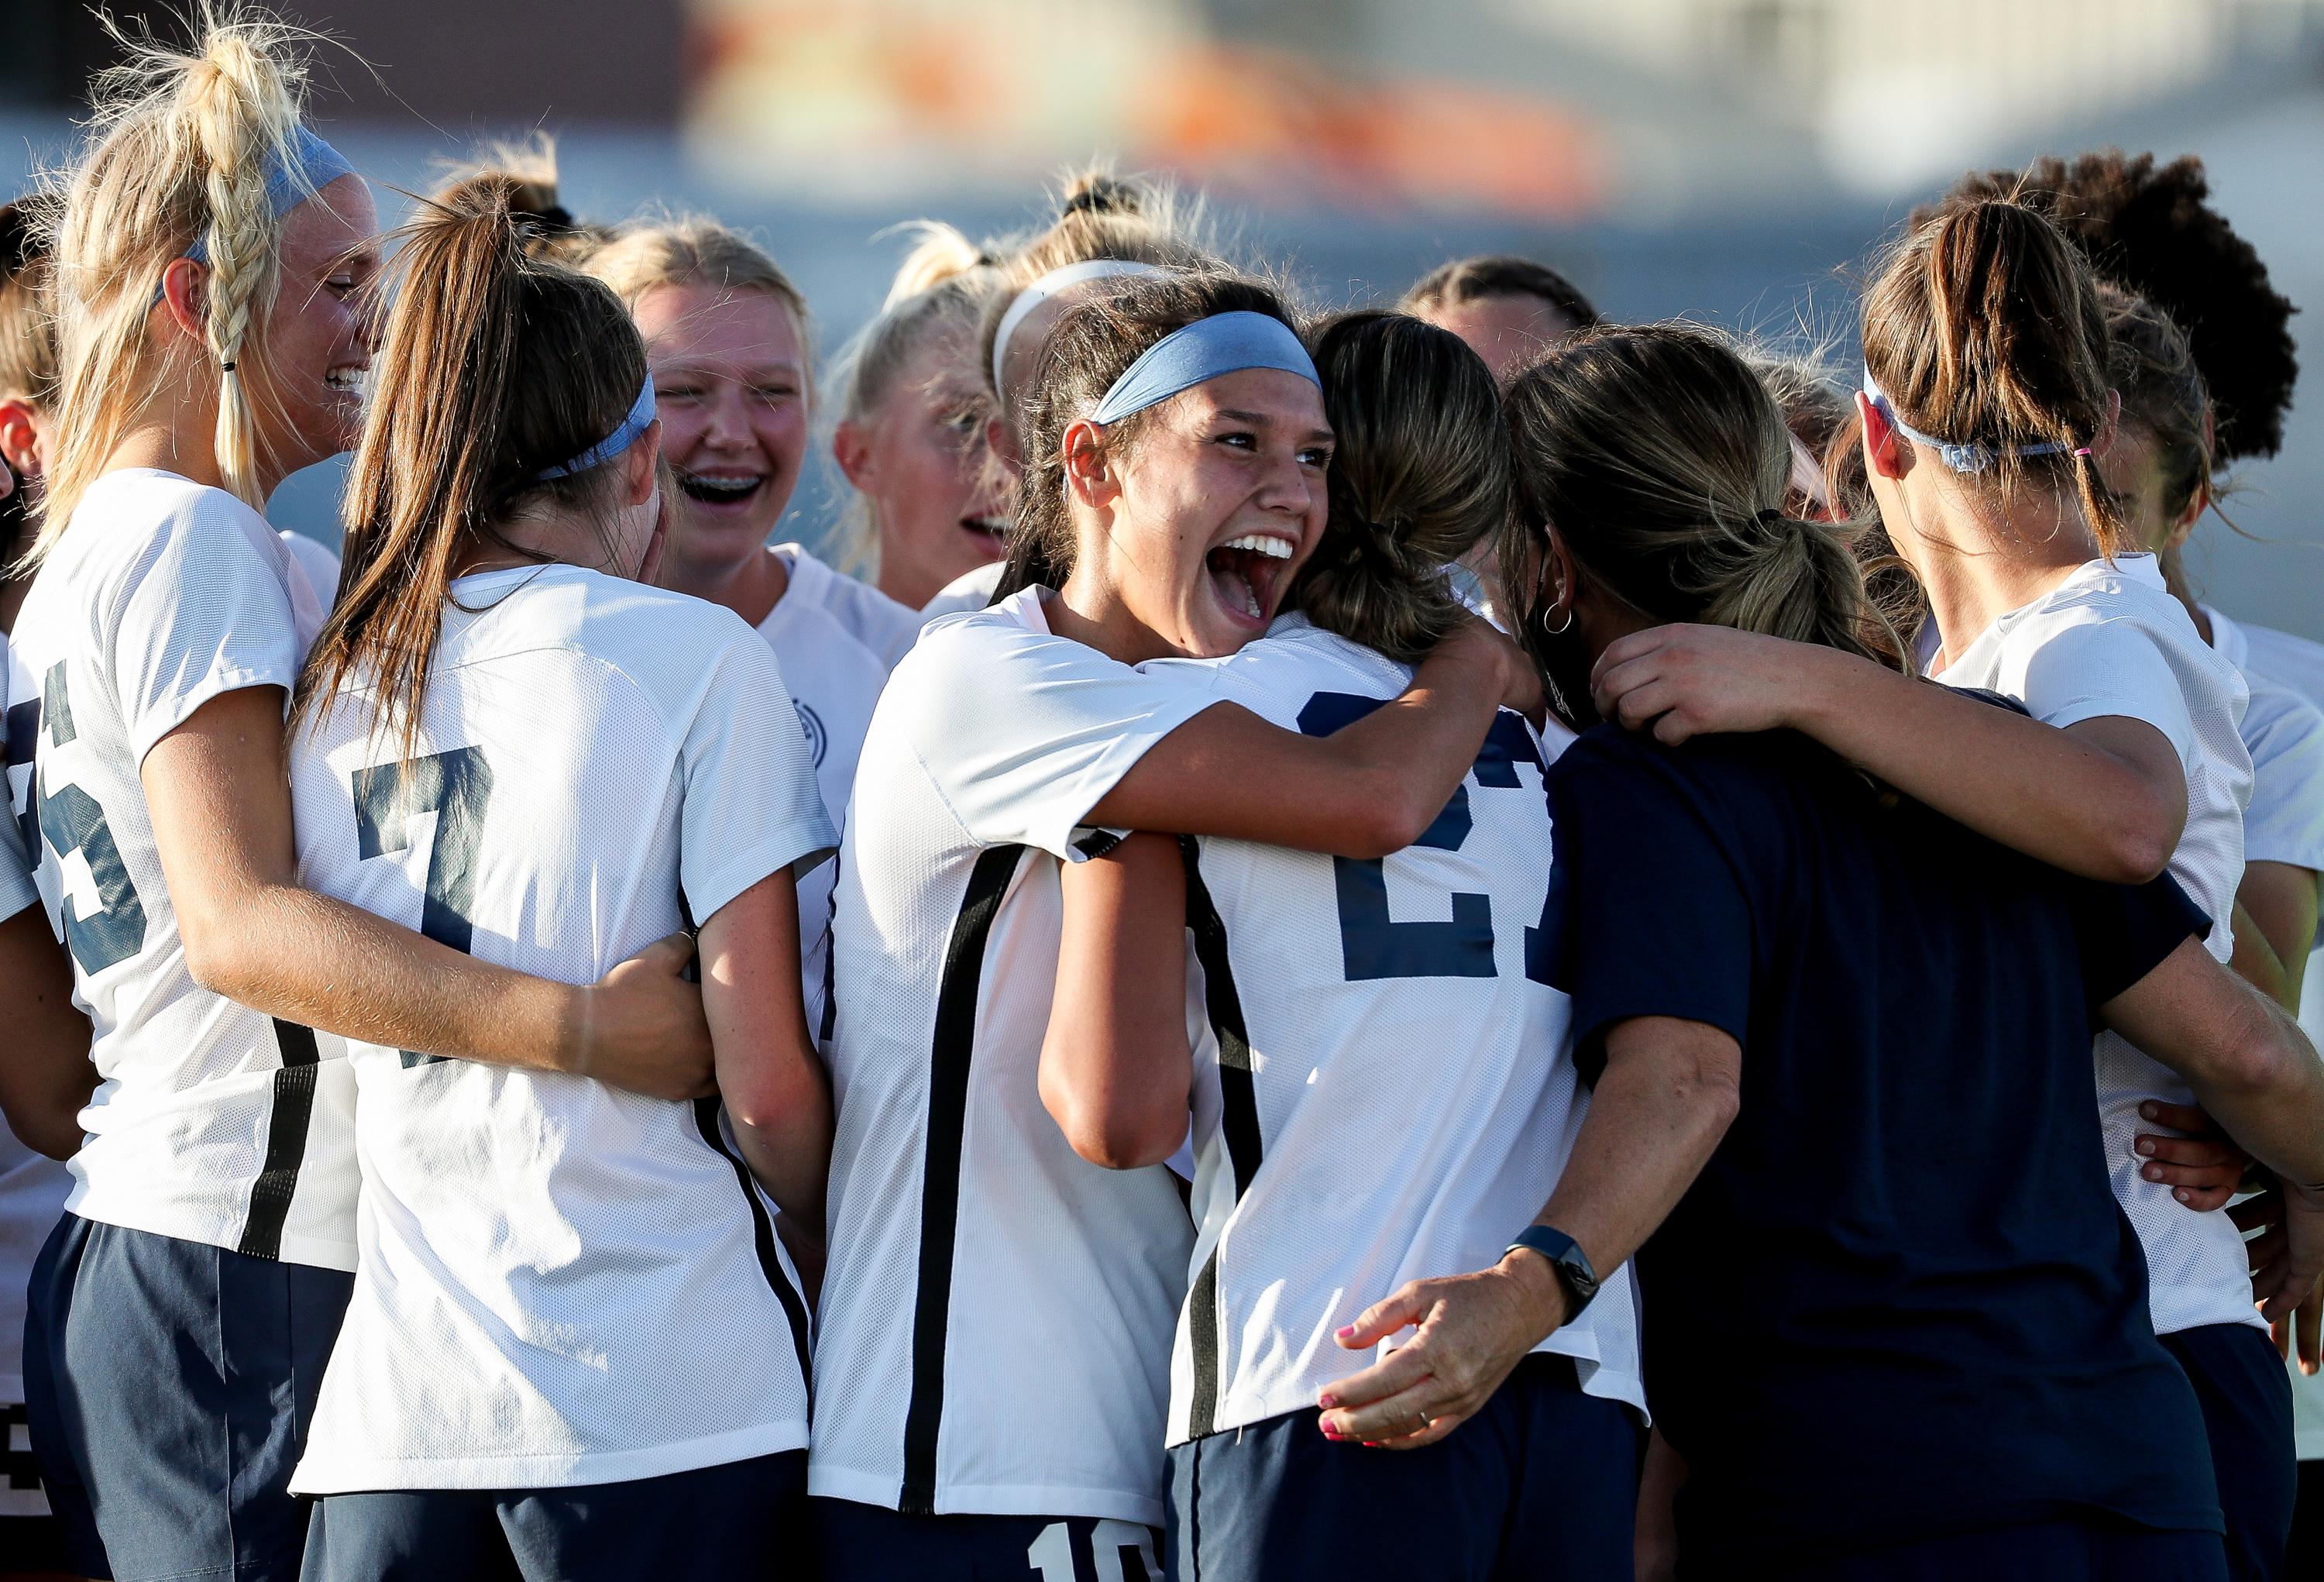 Timpanogos' Kendall Maynard smiles after her team's win over Lehi in a 5A girls soccer game in Lehi on Tuesday, Oct. 13, 2020.